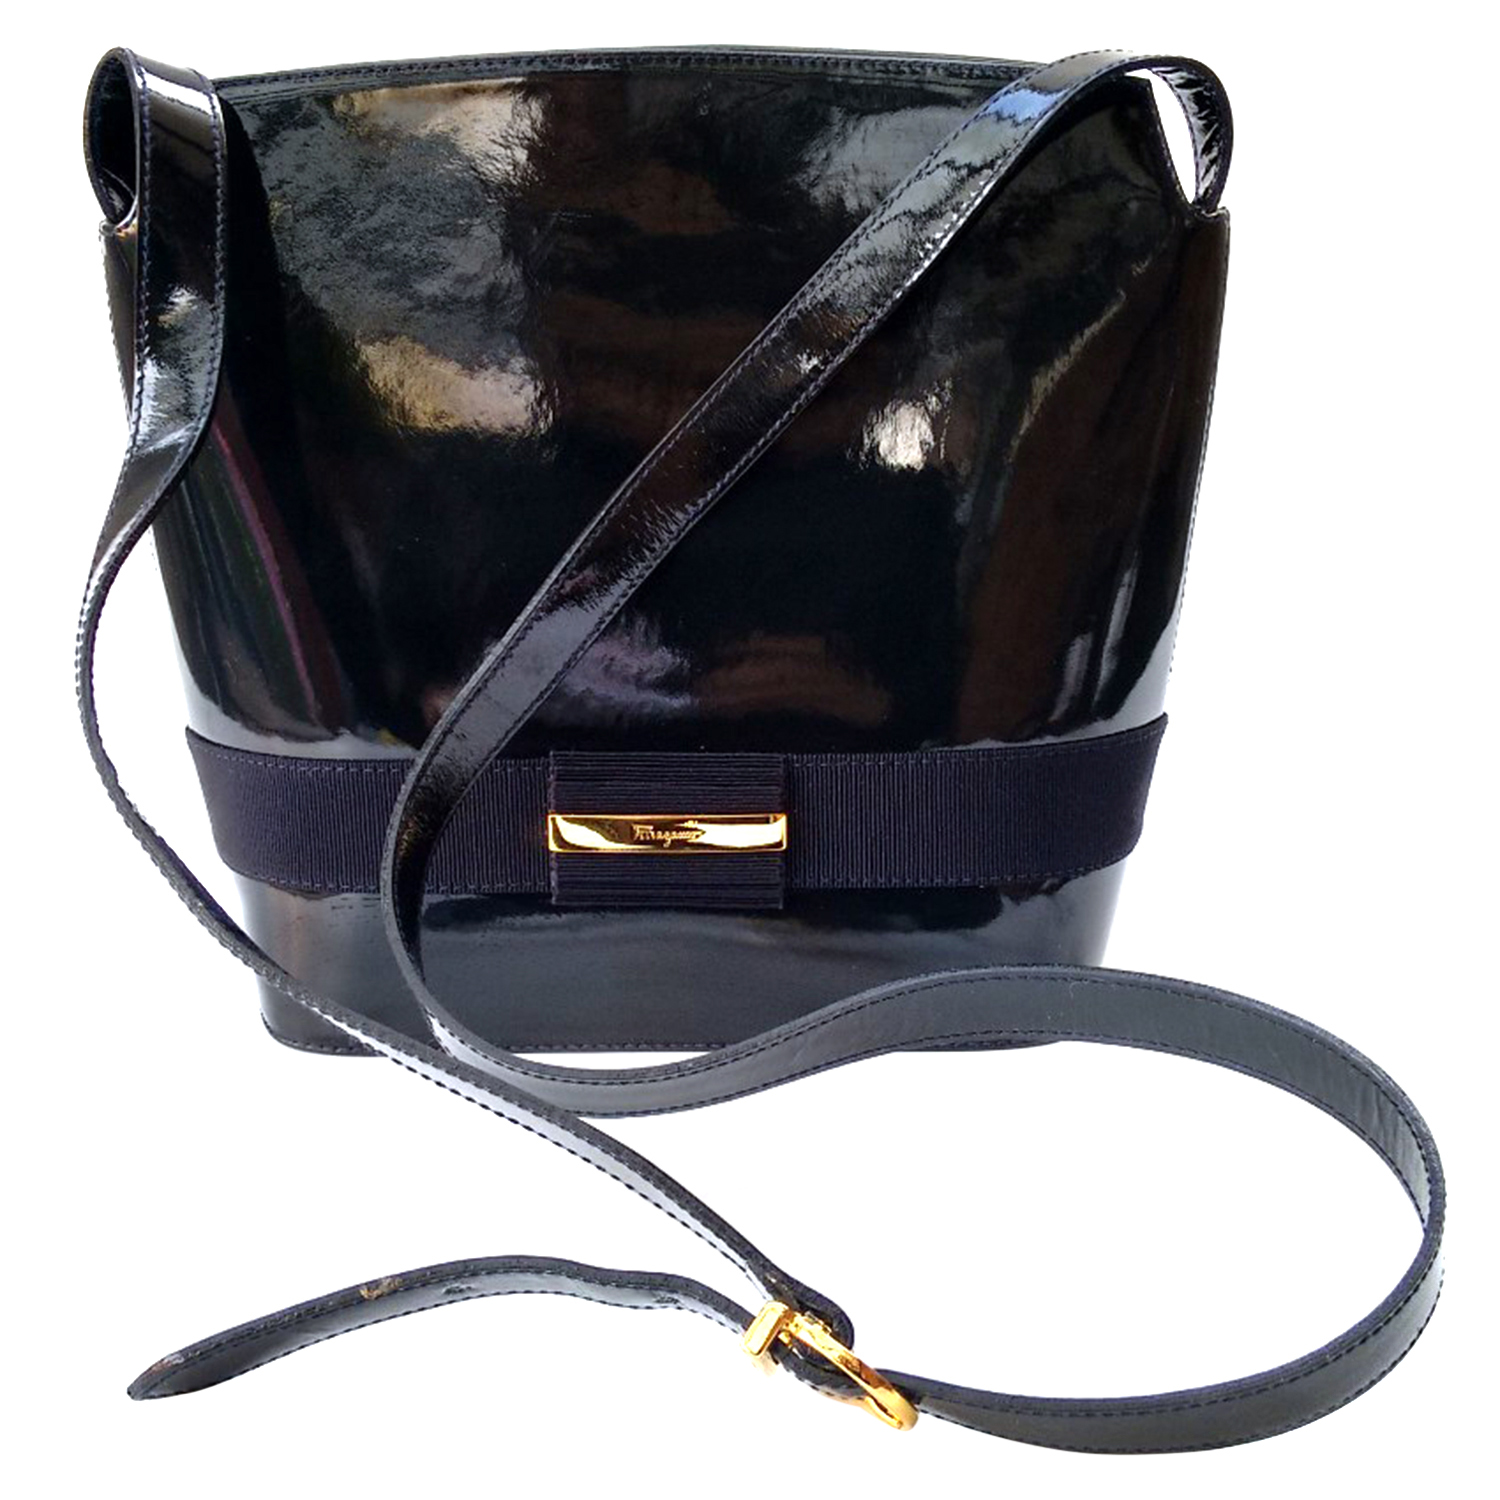 7894e50cf2 Salvatore Ferragamo Vintage Navy Patent Leather Shoulder Bag